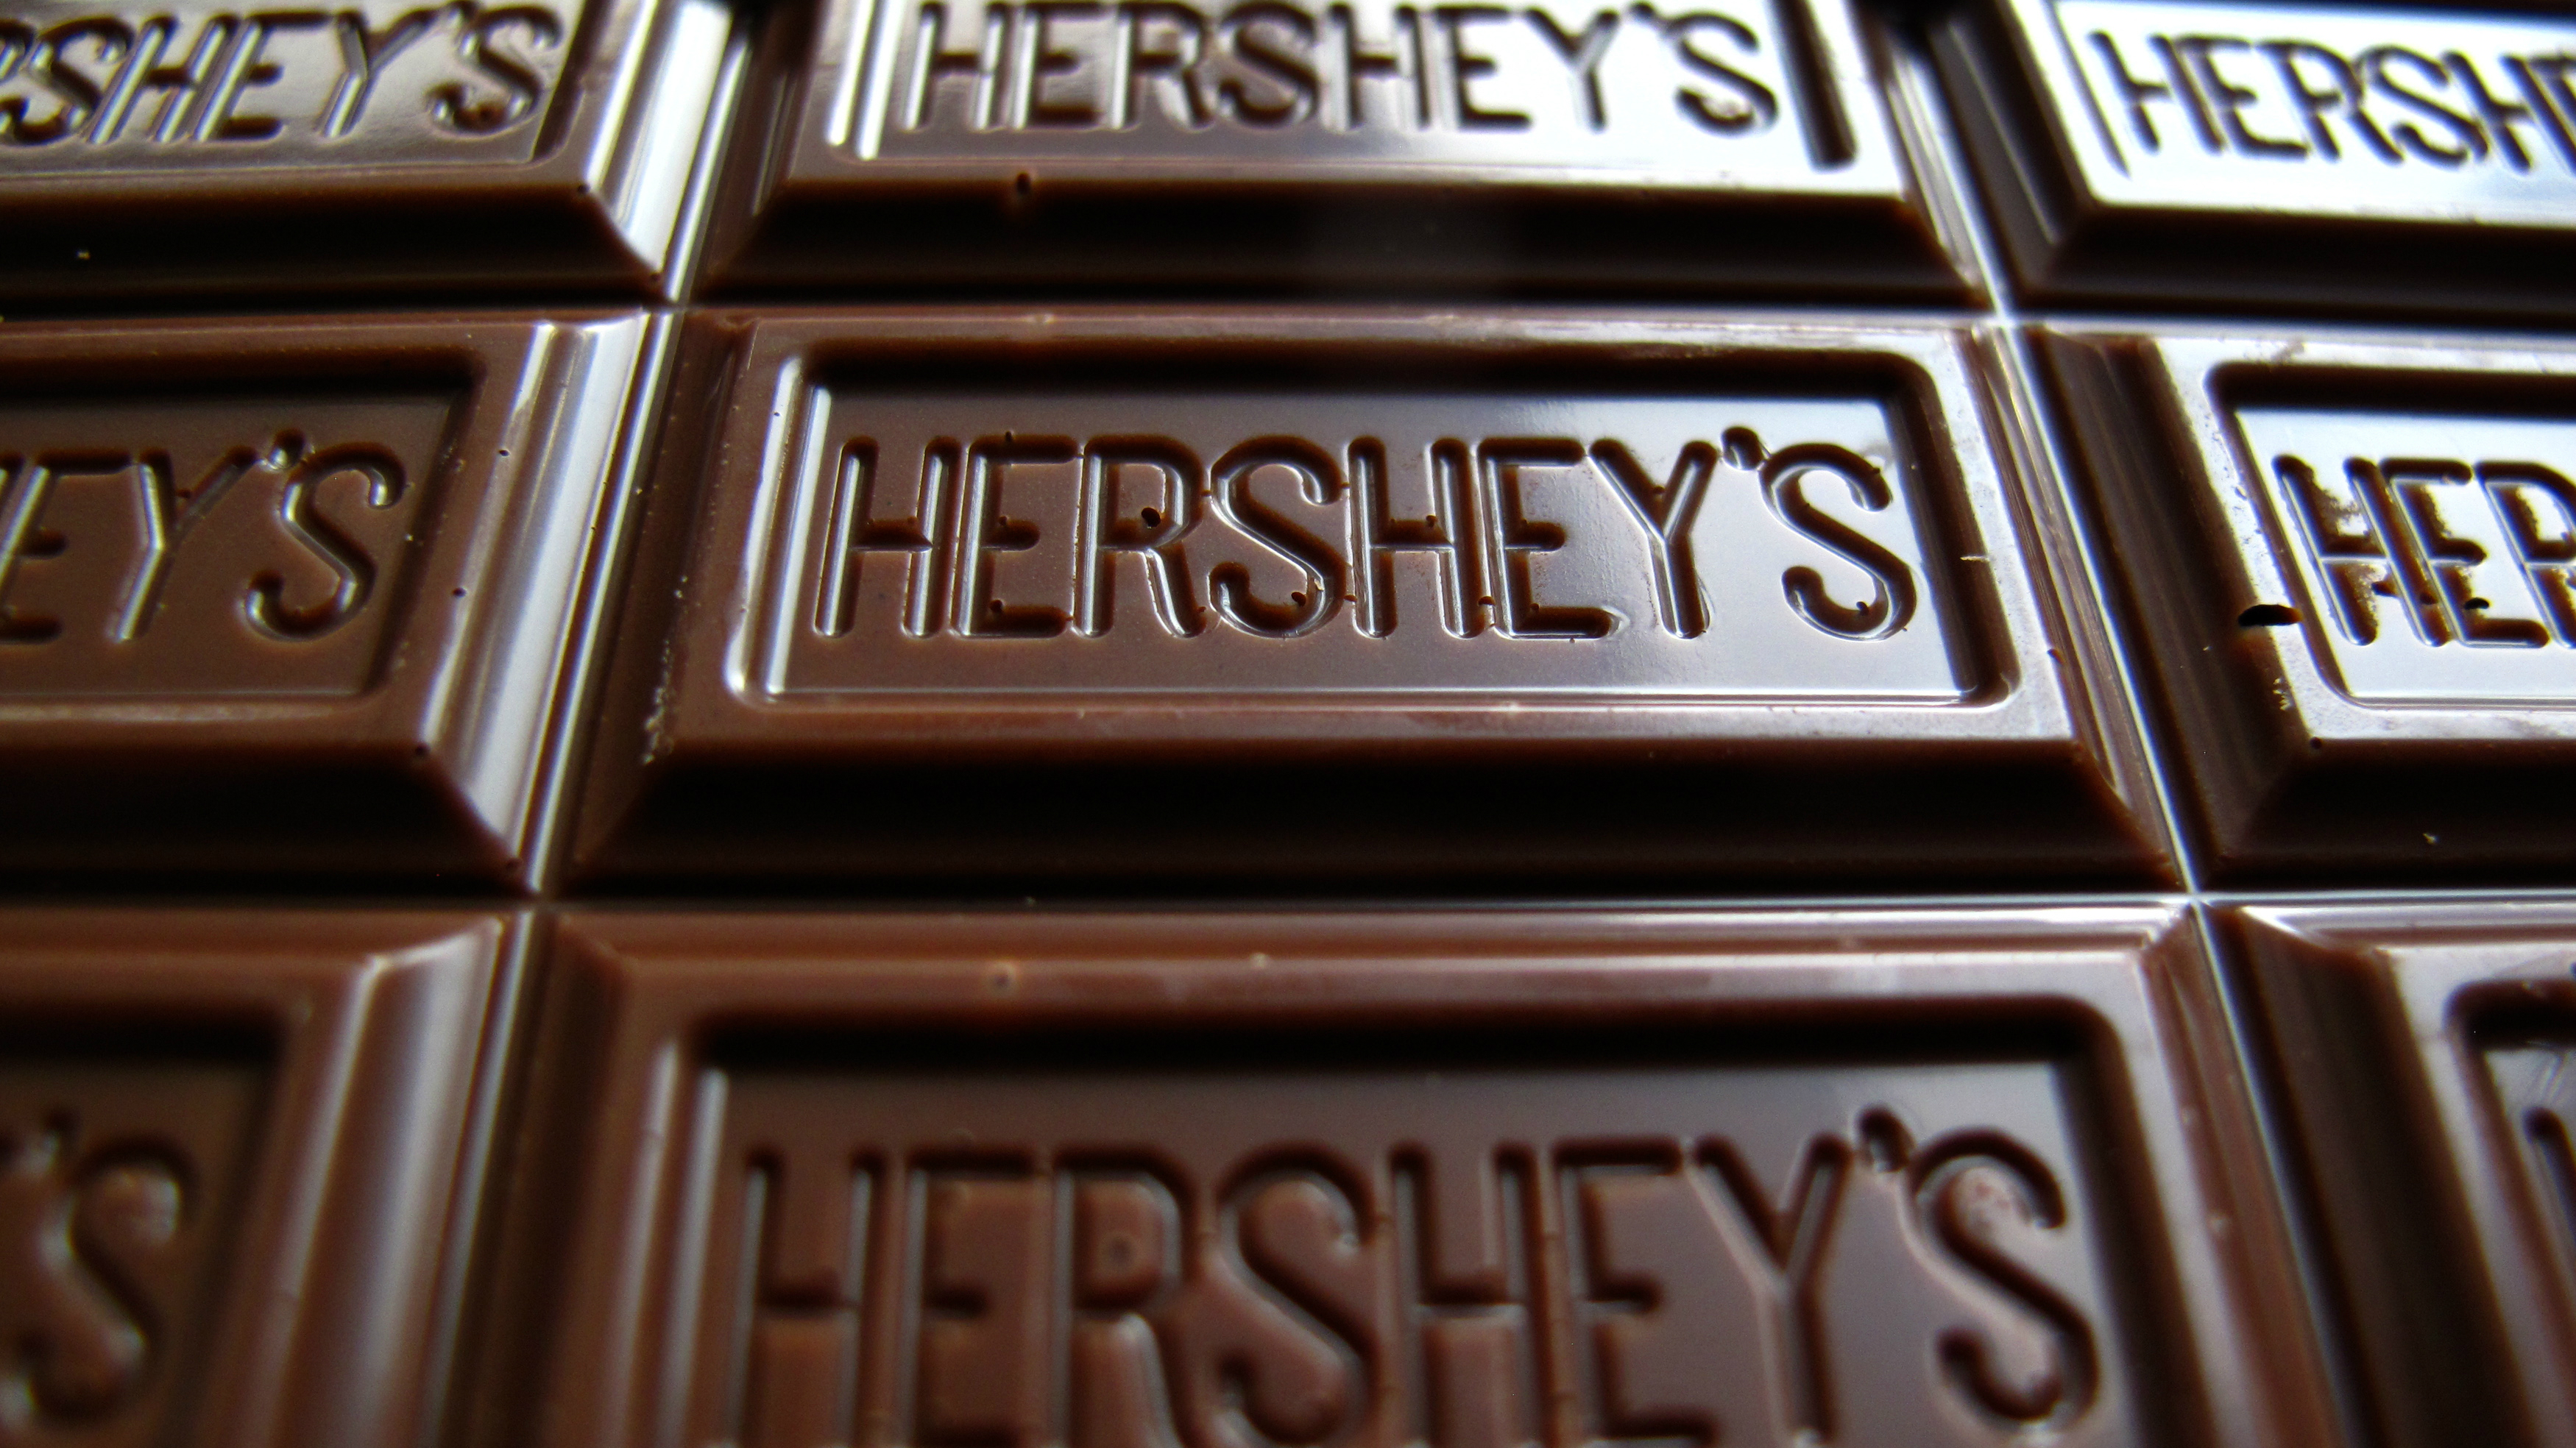 Hershey's is set to introduce meat bars to its line of snacks.